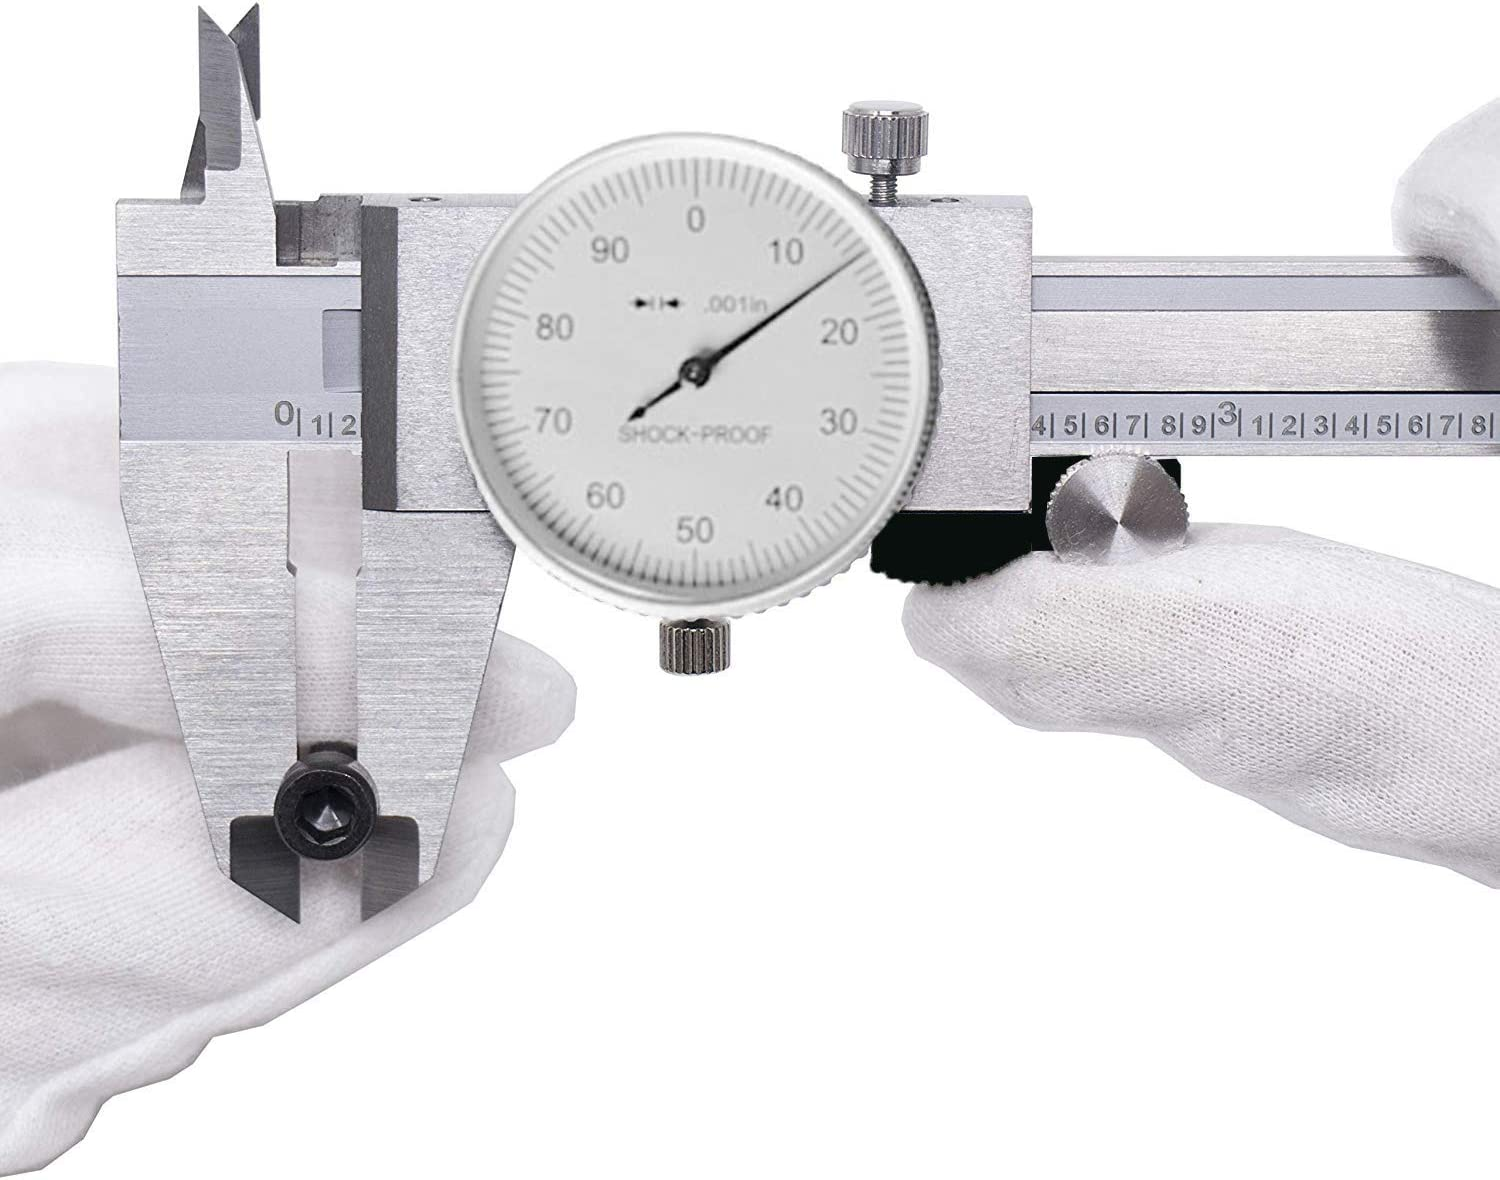 Precision Dial Caliper 0-6//0.001 Precision 0-150MM Dual Metric Inch Dial Caliper Double Shock Proof Solid Hardened Stainless Steel Caliper 6